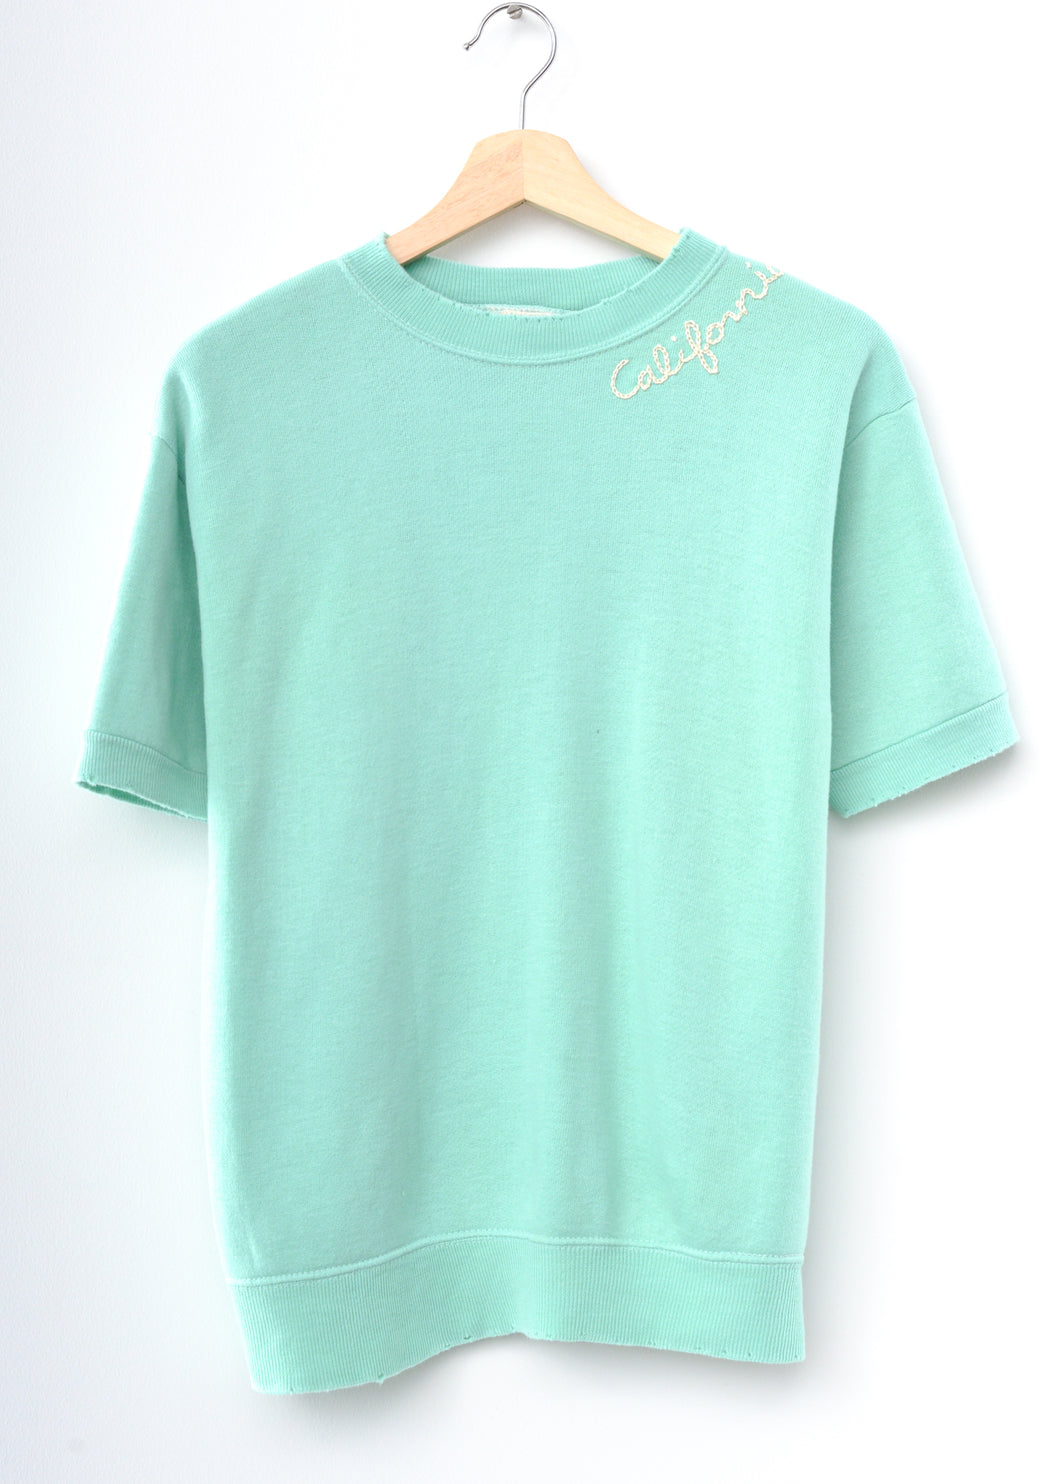 California Shorty Sweatshirt - Mint